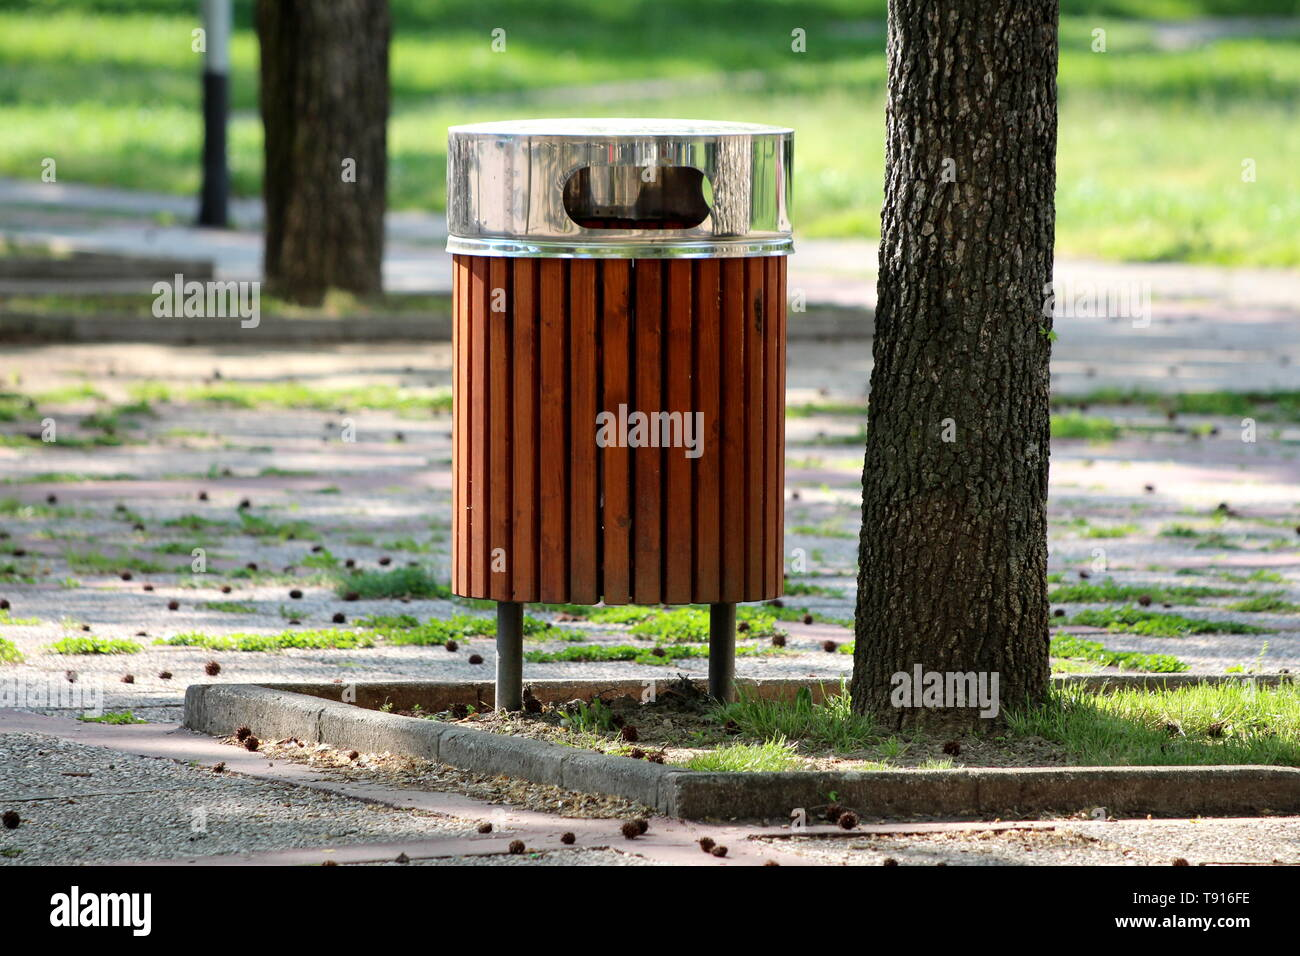 Public trash can made of narrow wooden boards with shiny metal top cover next to old tall tree surrounded with stone tiles in local park on warm sunny - Stock Image